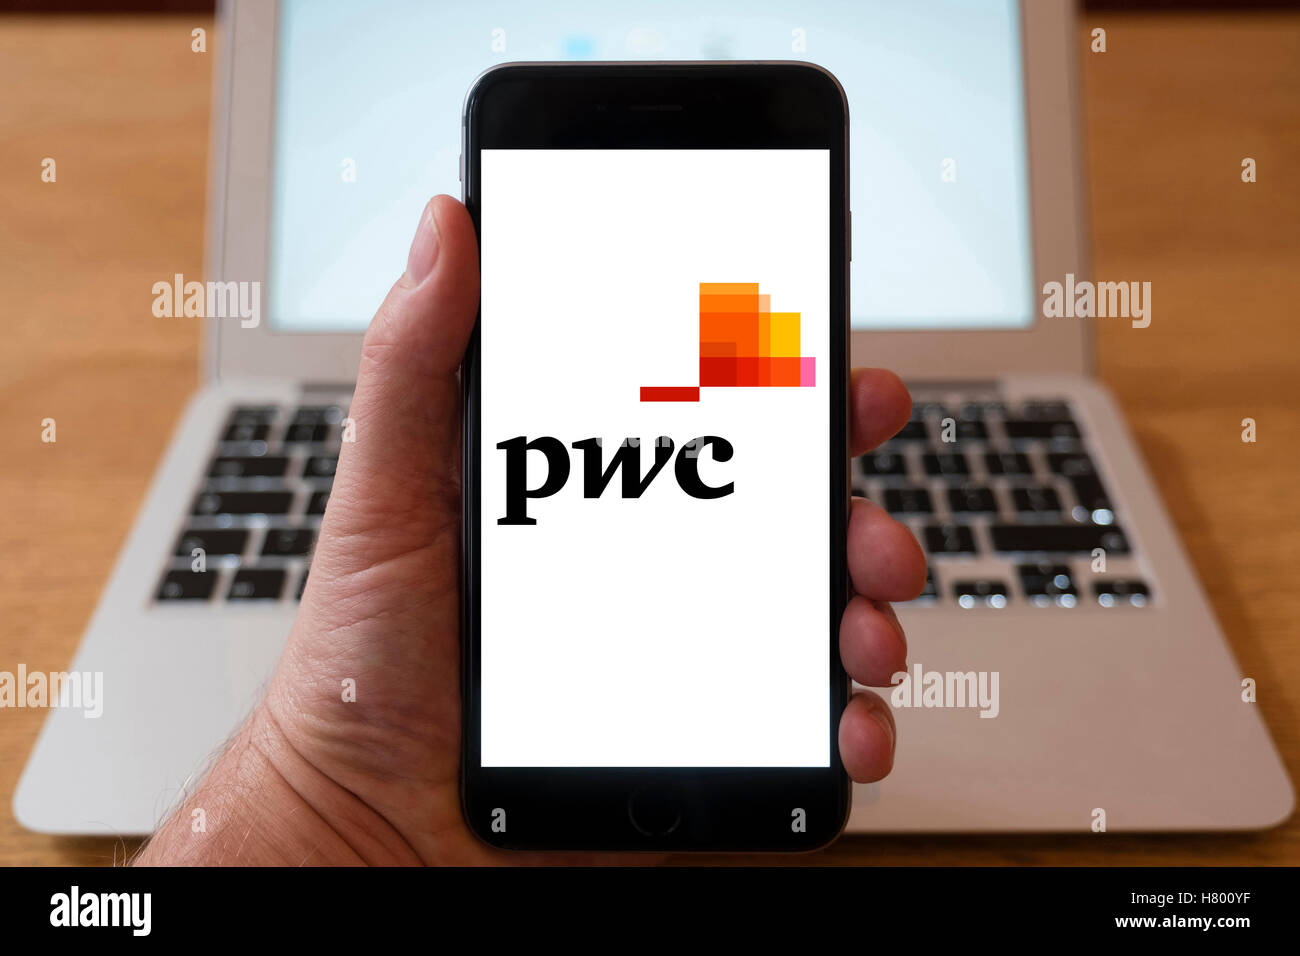 Using iPhone smartphone to display logo of PWC , PricewaterhouseCoopers , the multinational professional services - Stock Image